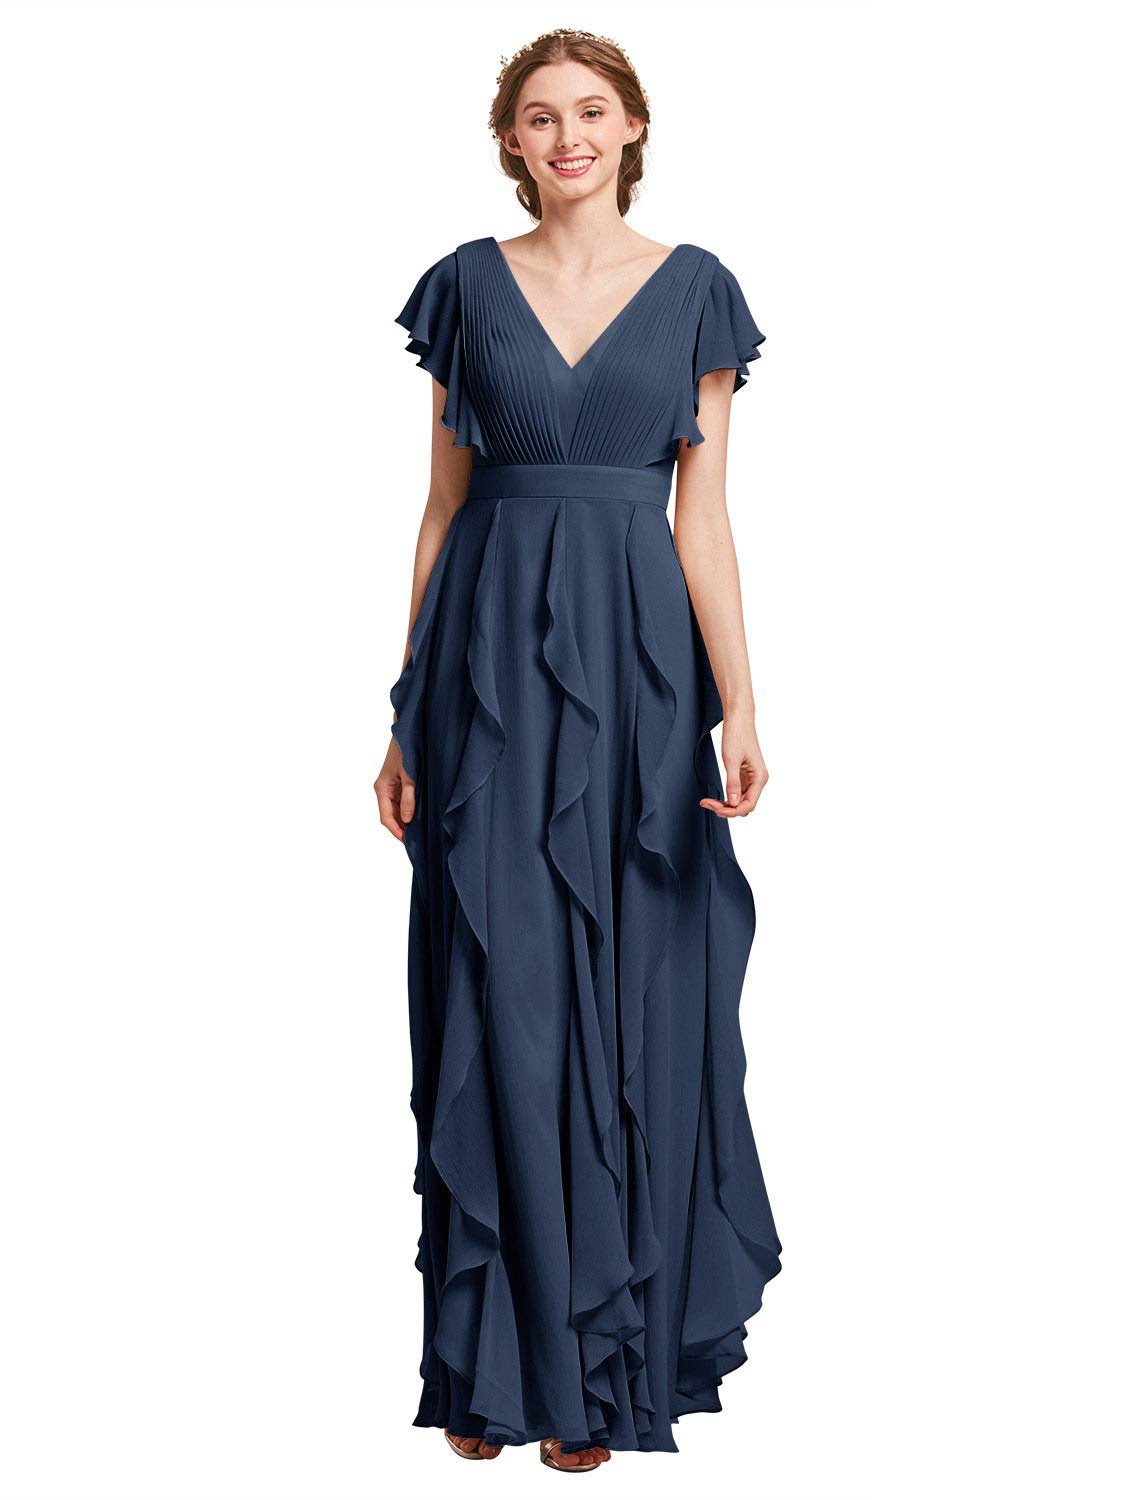 AW Bridal Plus Size Bridesmaid Dresses for Women Formal Dresses with  Sleeves Chiffon Long Gowns and Evening Dresses, Navy, US18